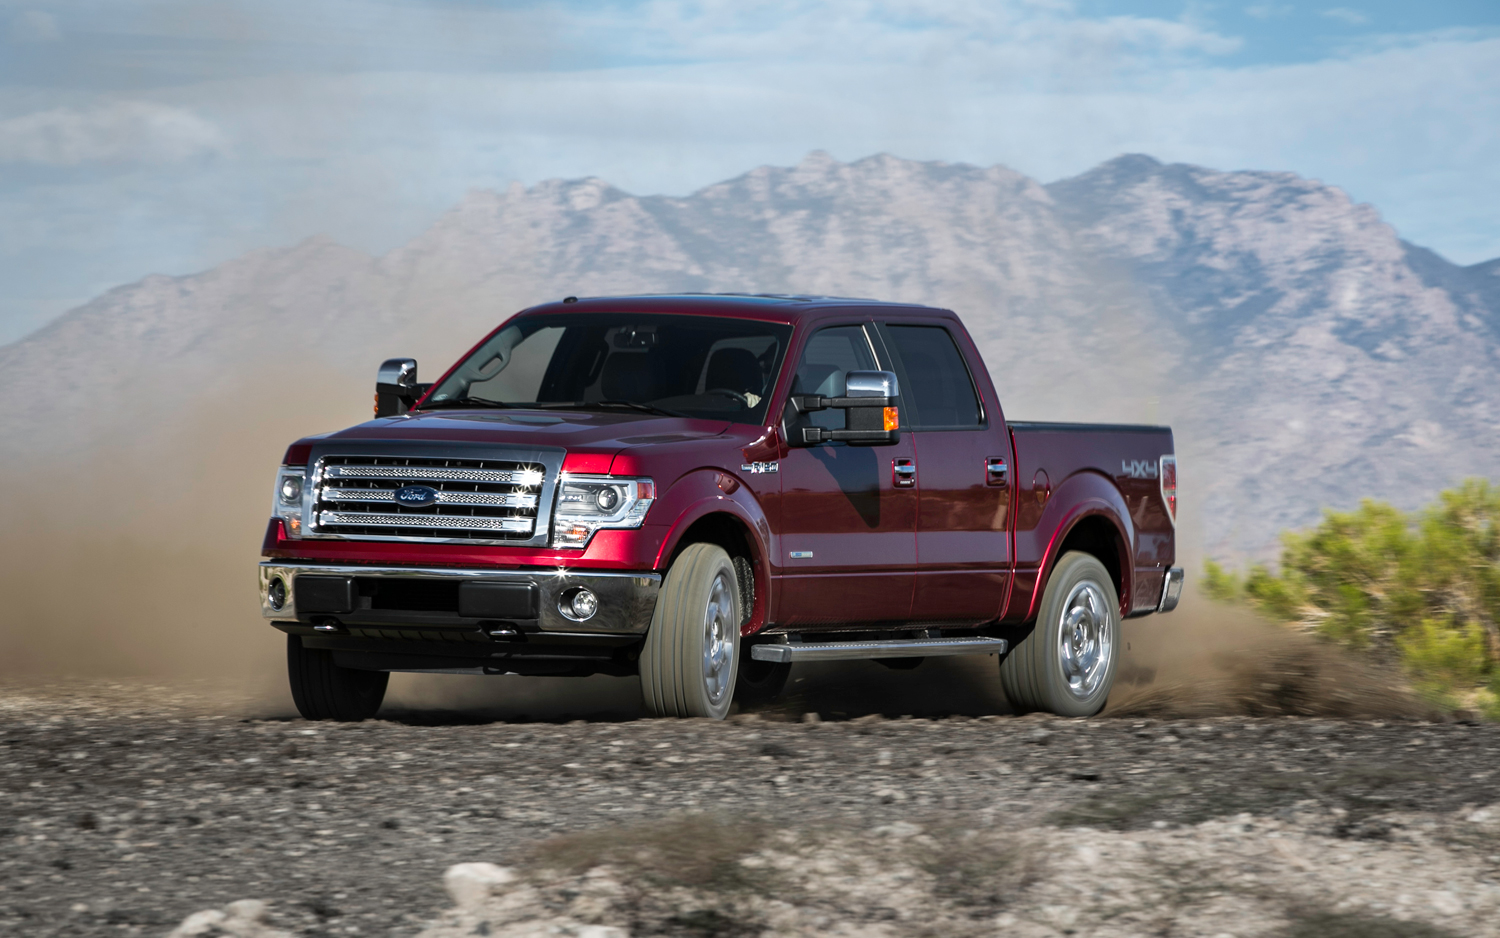 Top 10 Best-Selling Vehicles in November 2013